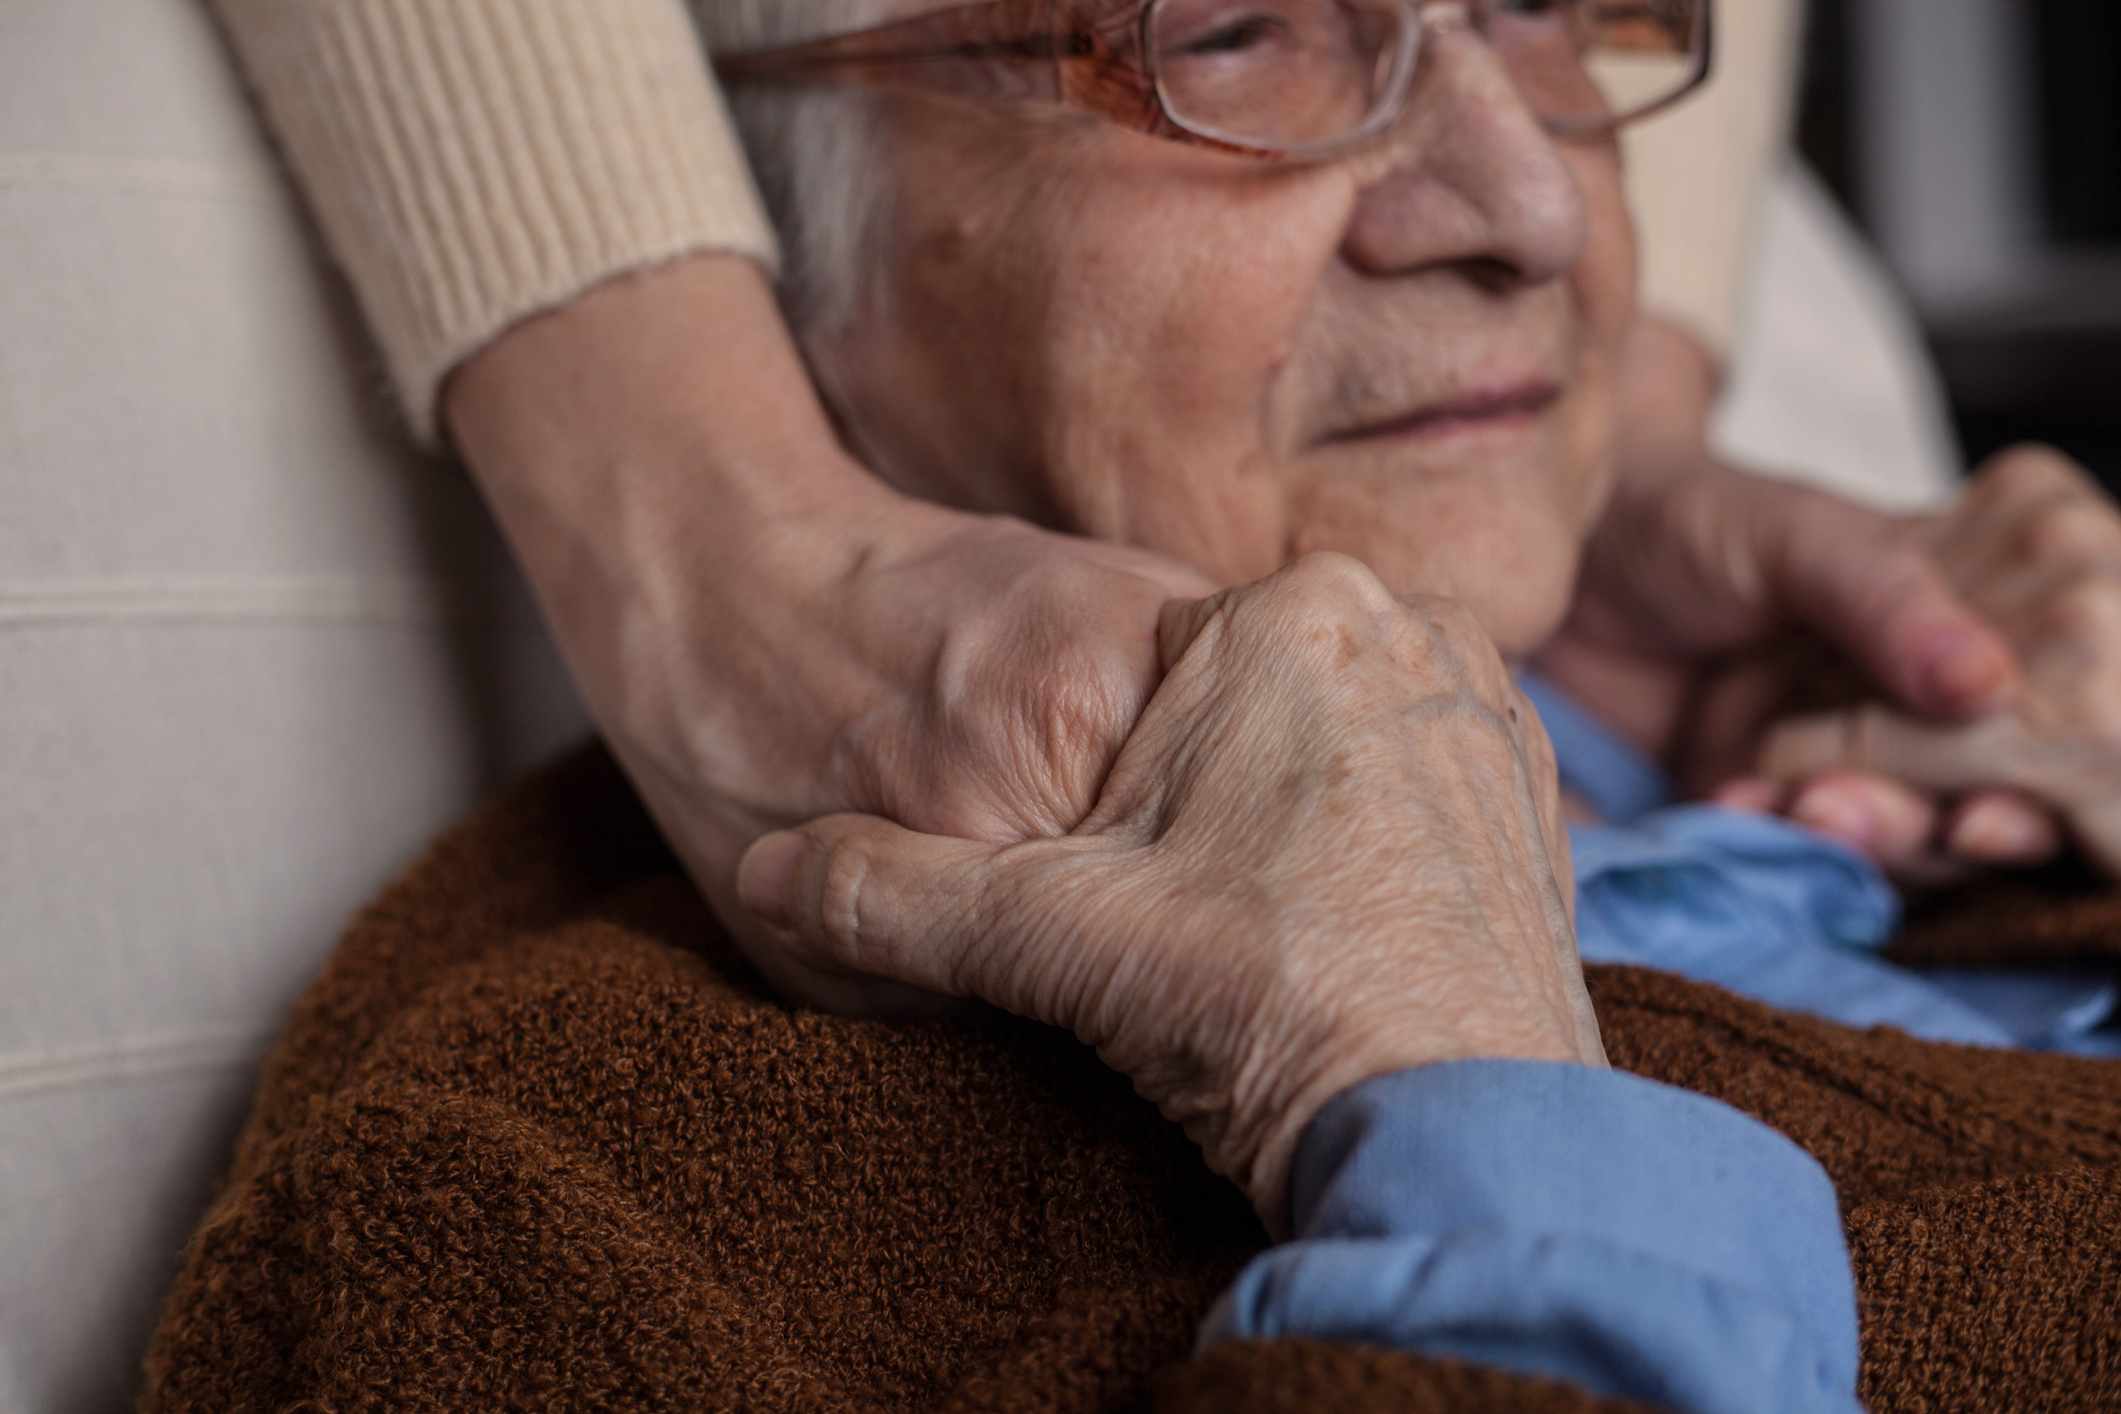 Learn about late stages of dementia symptoms and care needs and how to provide the best care for a loved one from the experts at Live Free Home Health Care.